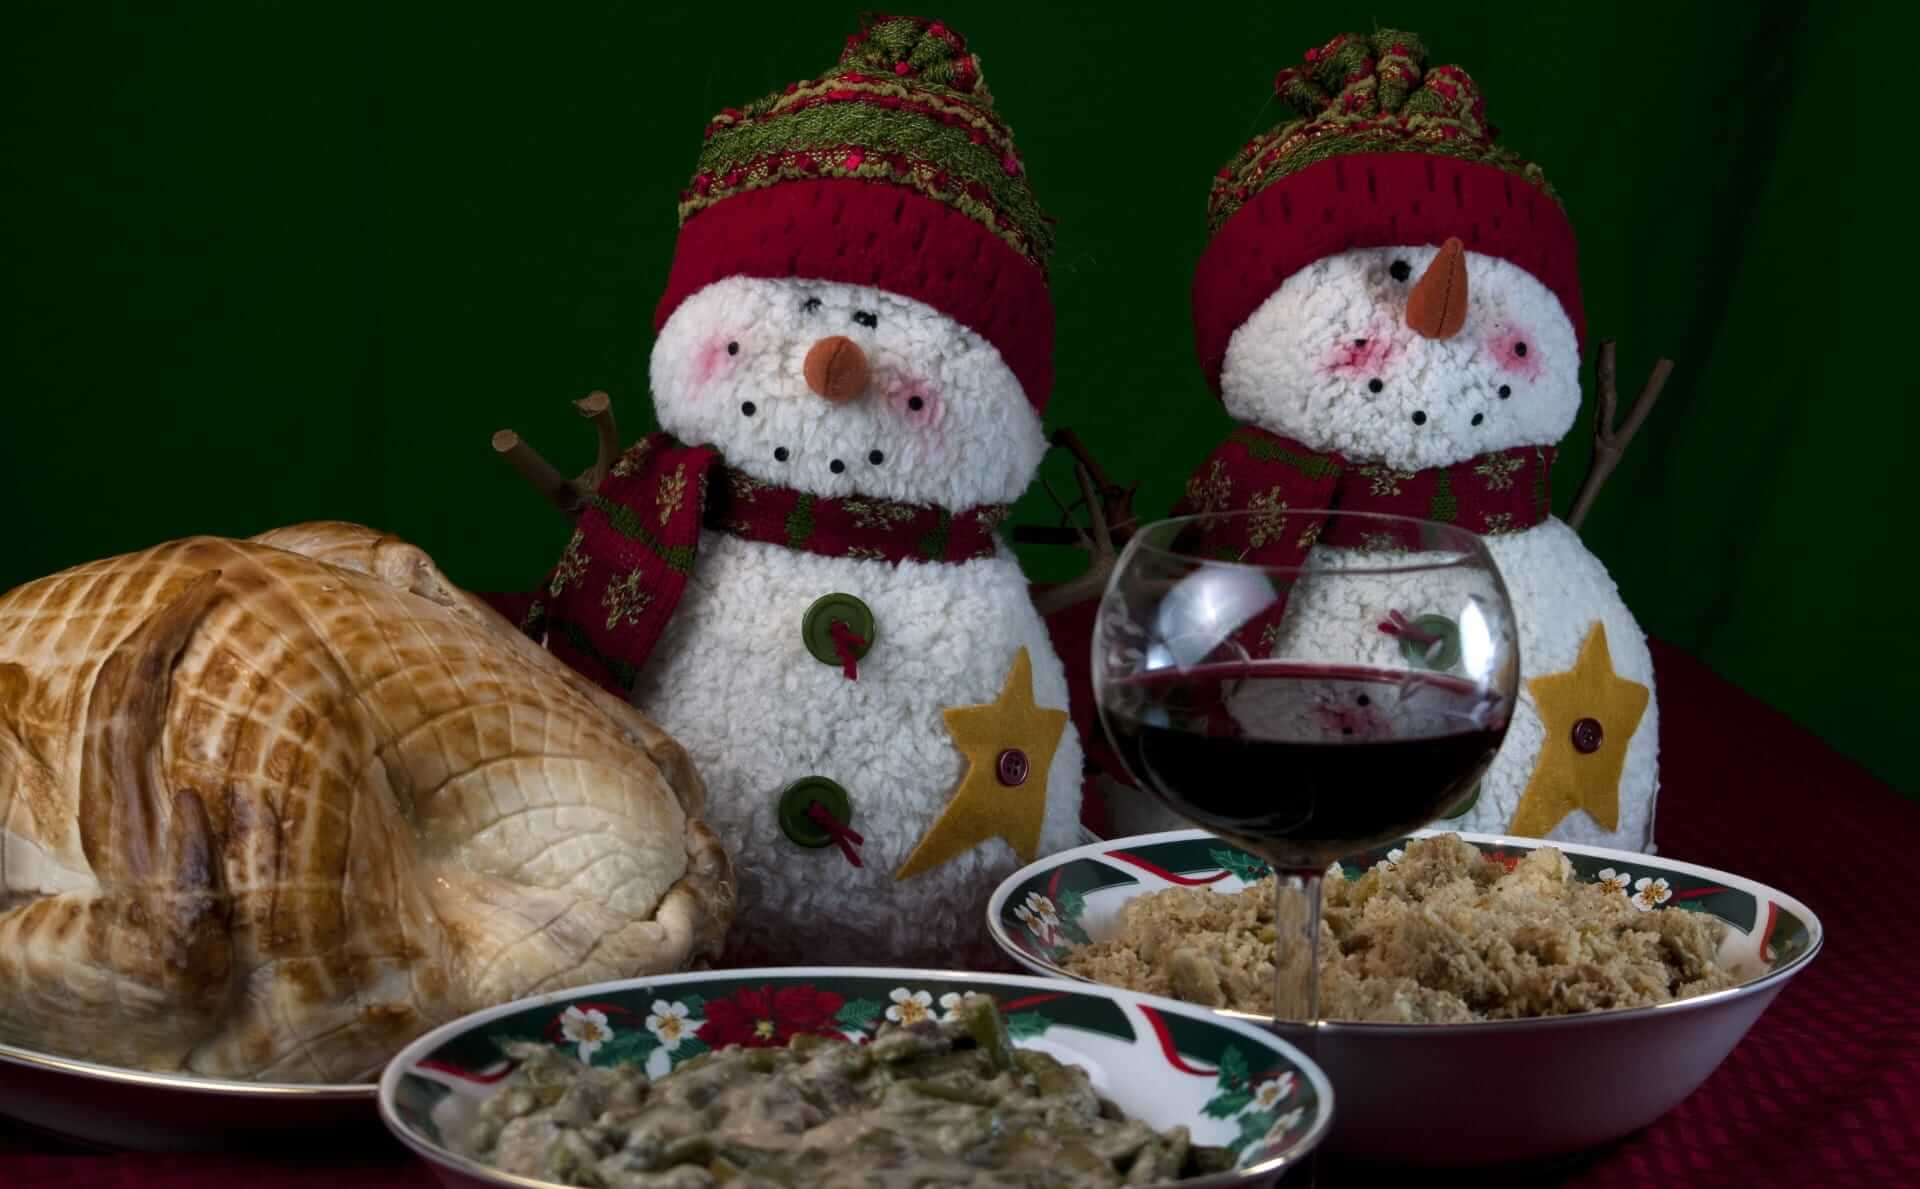 Estero Restaurants Open On Christmas Day Fort Myers Estero Fl 2020 Who's Open for Dining on Christmas and New Year's?   Fort Myers